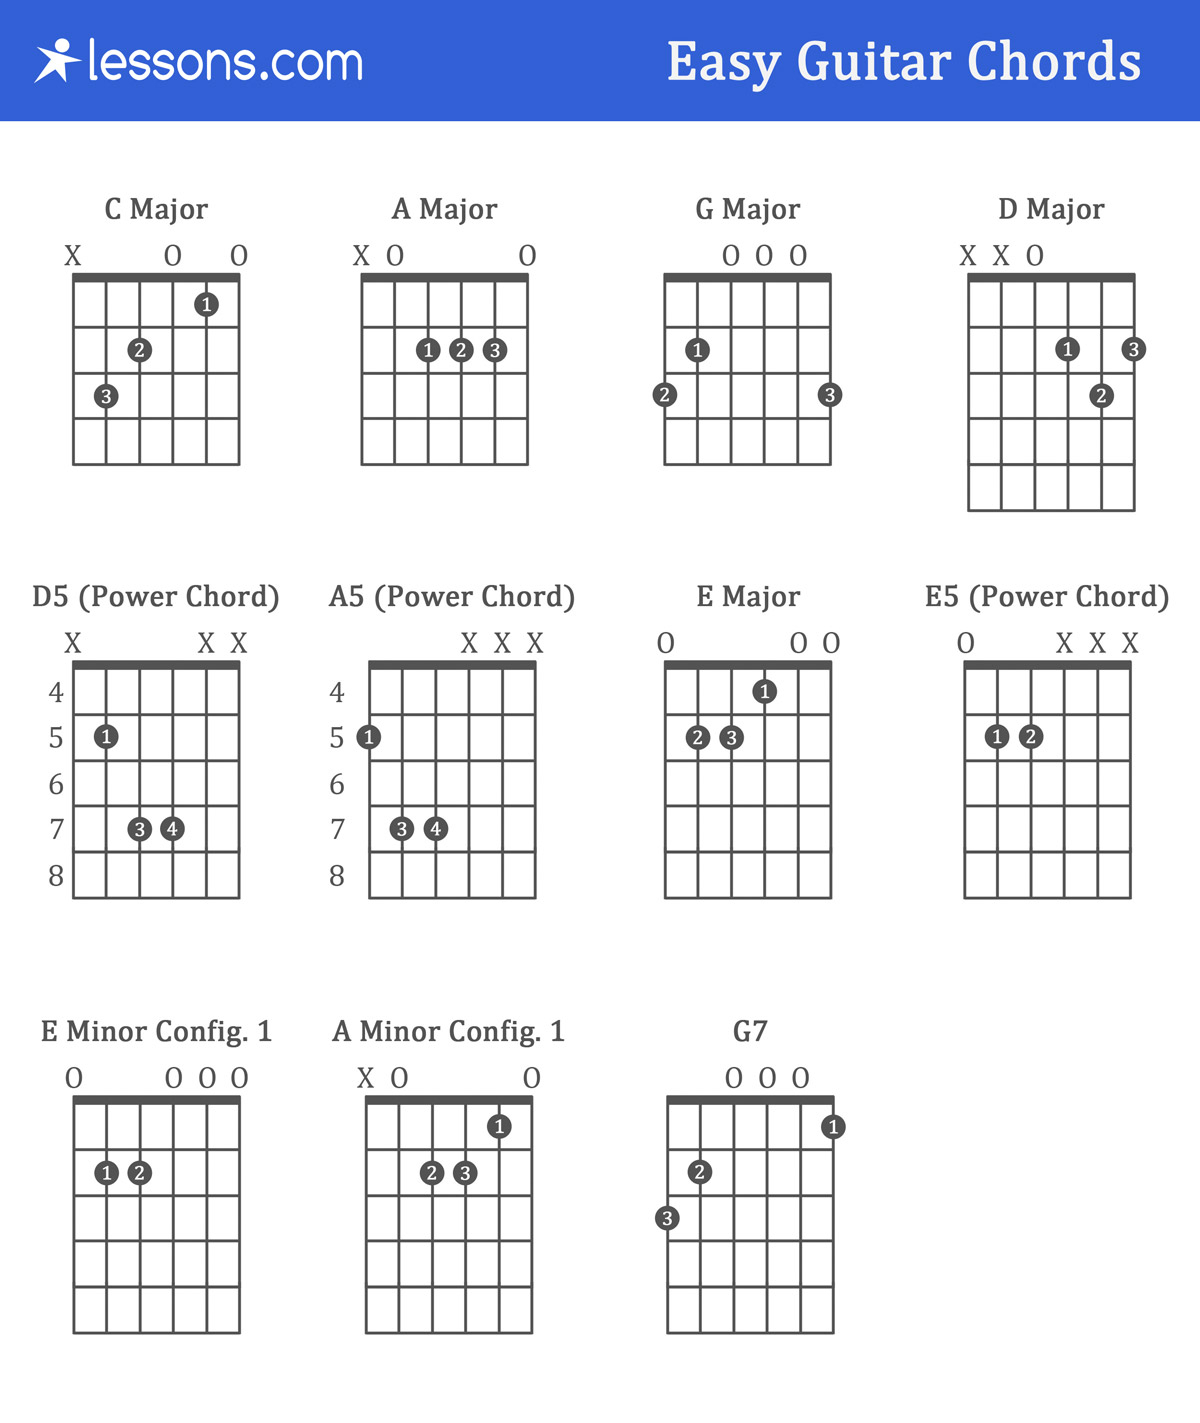 A Chord Guitar The 11 Easy Guitar Chords For Beginners With Charts Examples